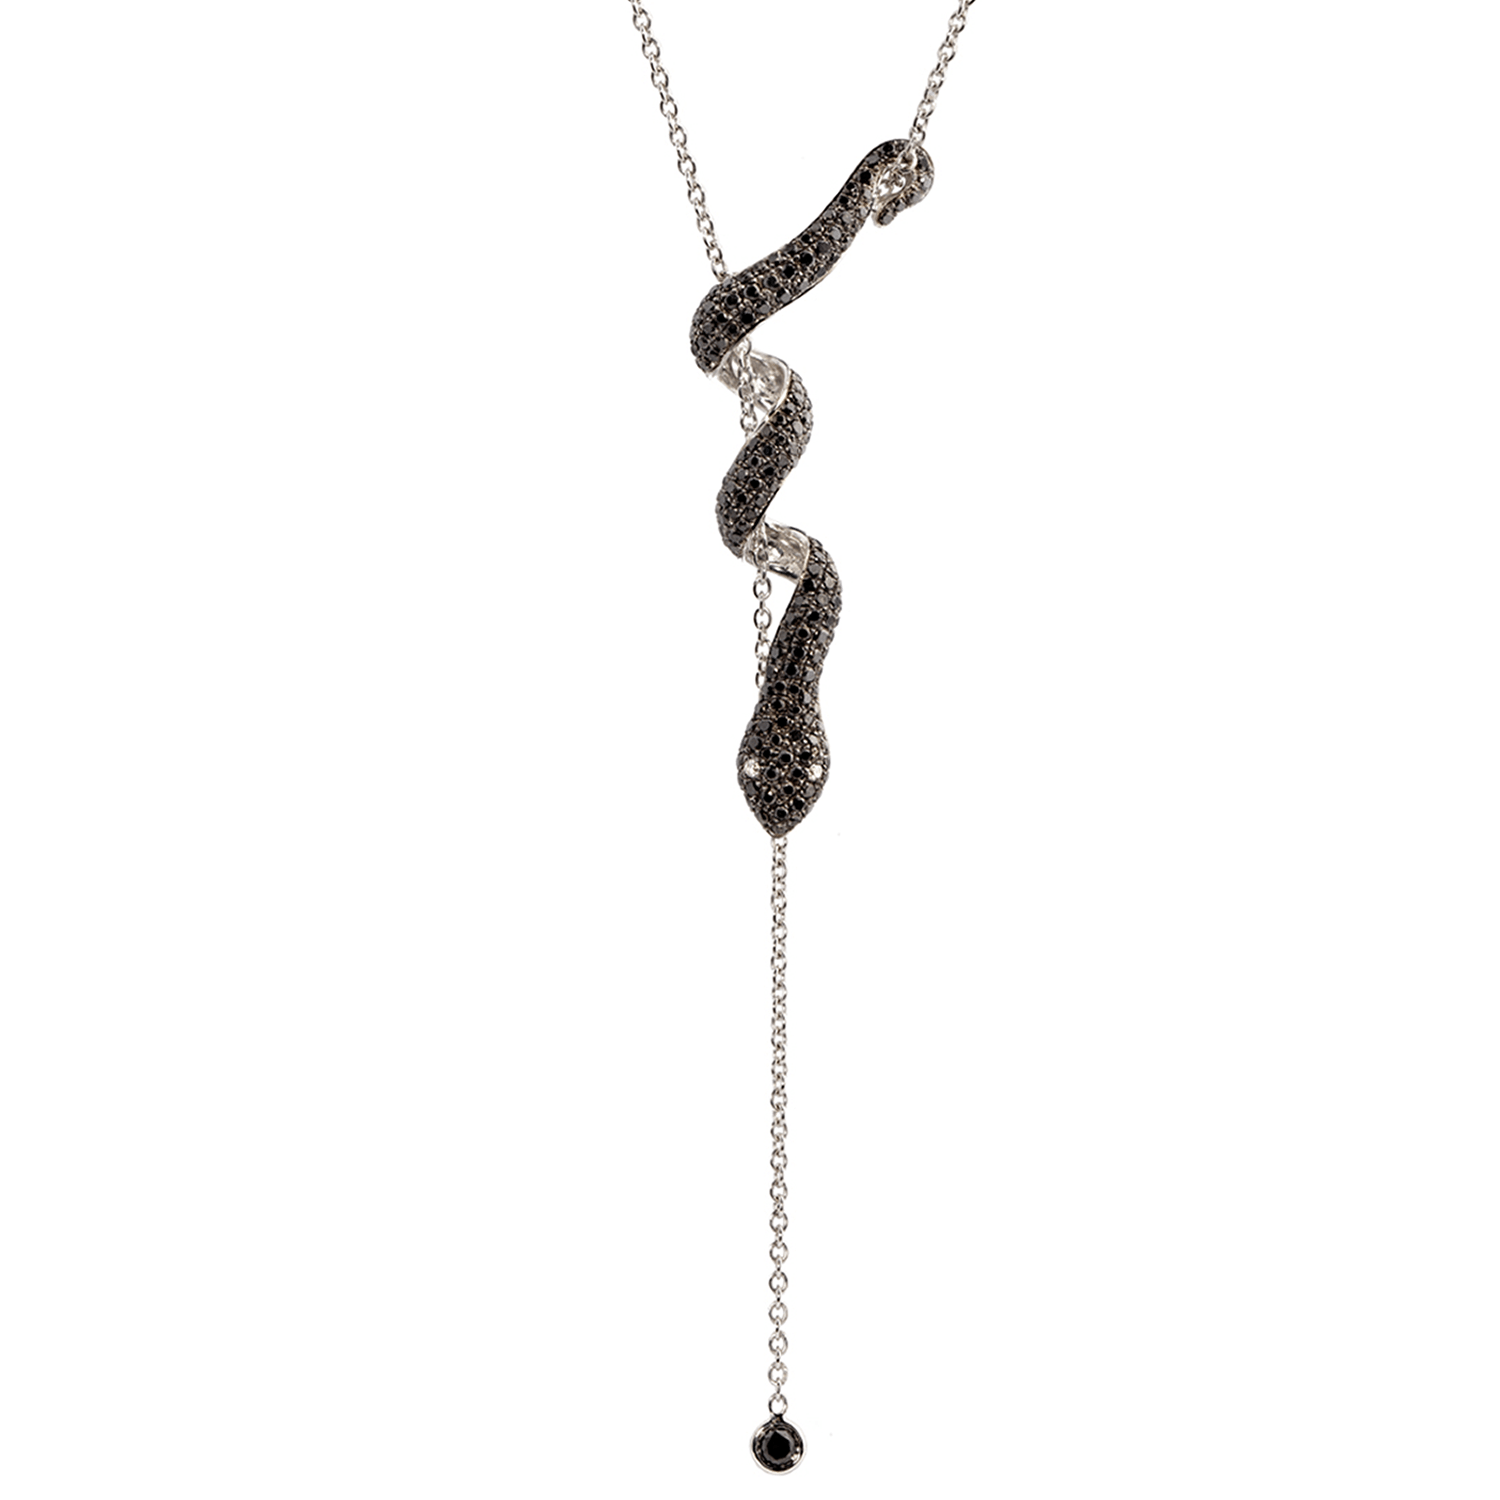 Collier Snake Or gris 18k serti de Diamants Noirs - Dangerous Kiss